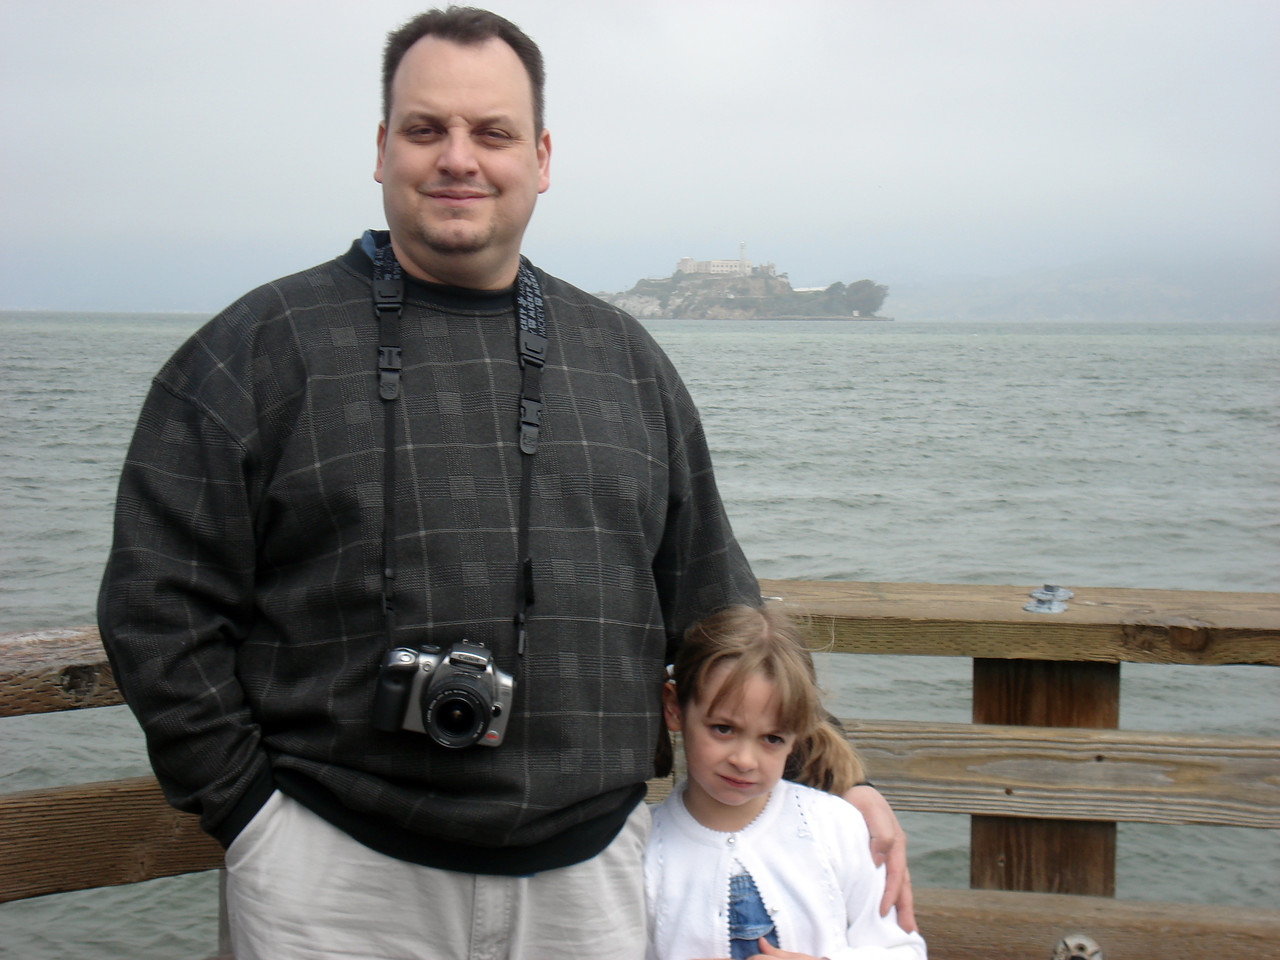 Me and Lauren in front of Alcatraz. Two trips to SF and I still haven't made it over there yet.